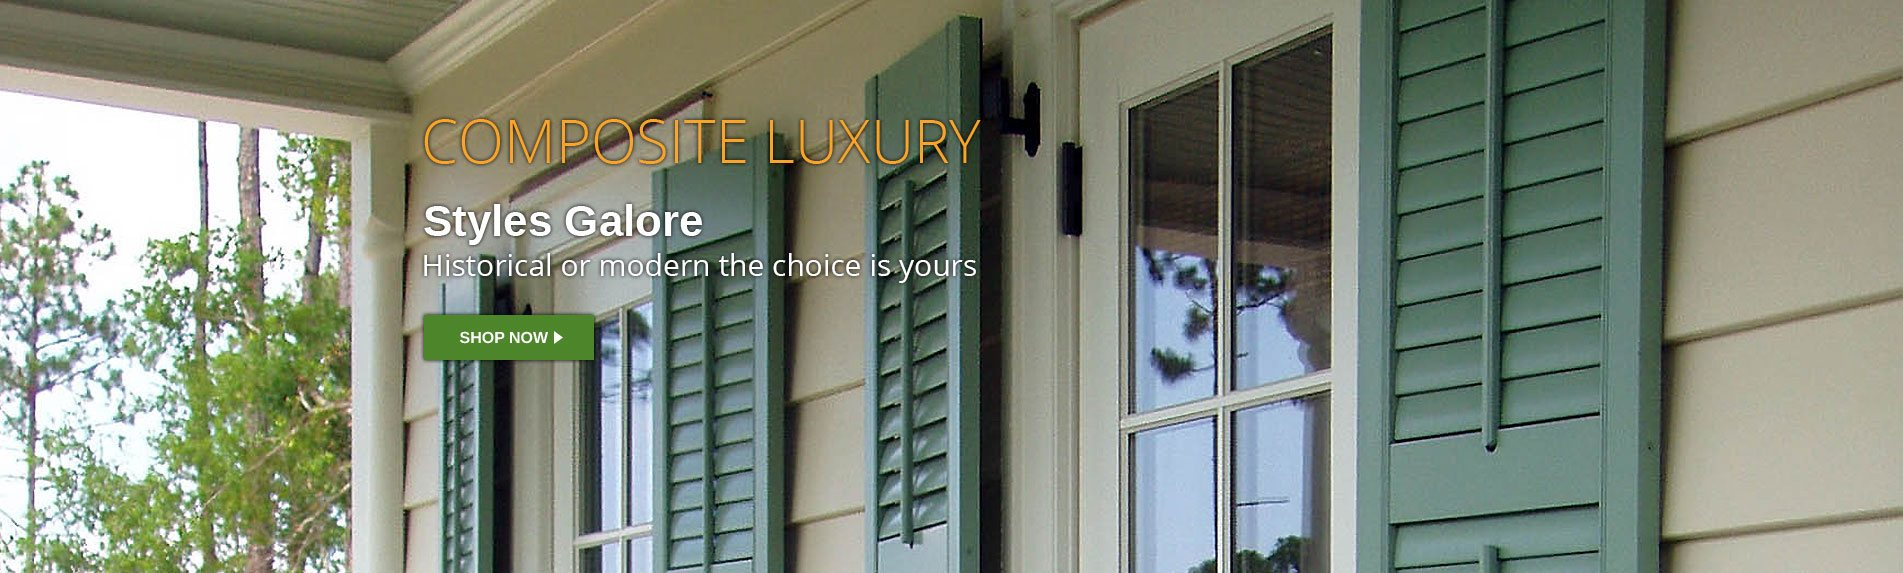 Composite Luxury Shutters Styles Galore